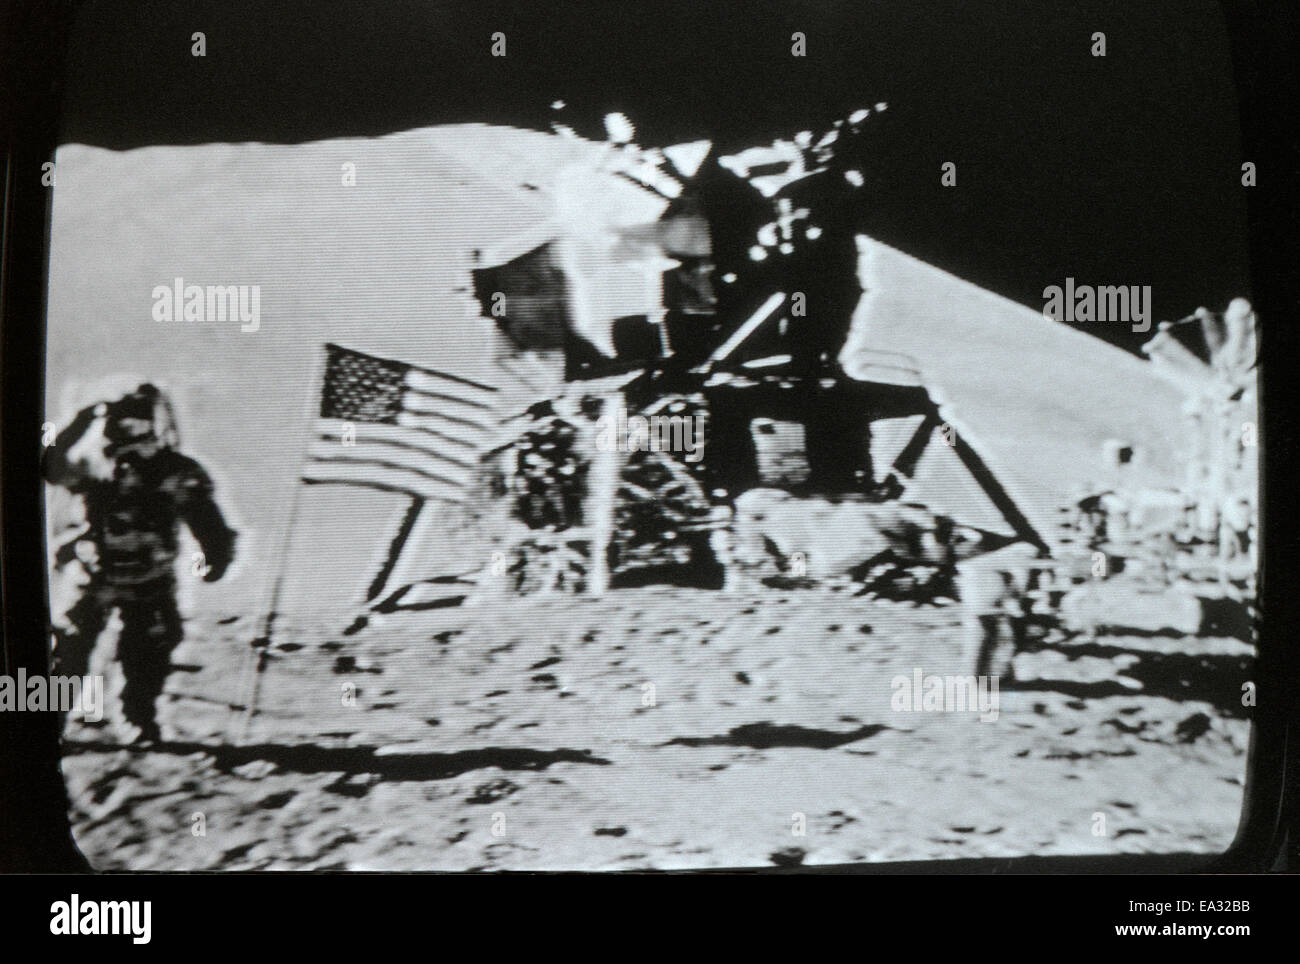 Moon Landing Lunar Module Eagle Flag And Astronaut 20 July 1969 Photographed In Actual Time On TV LA California KATHY DEWITT